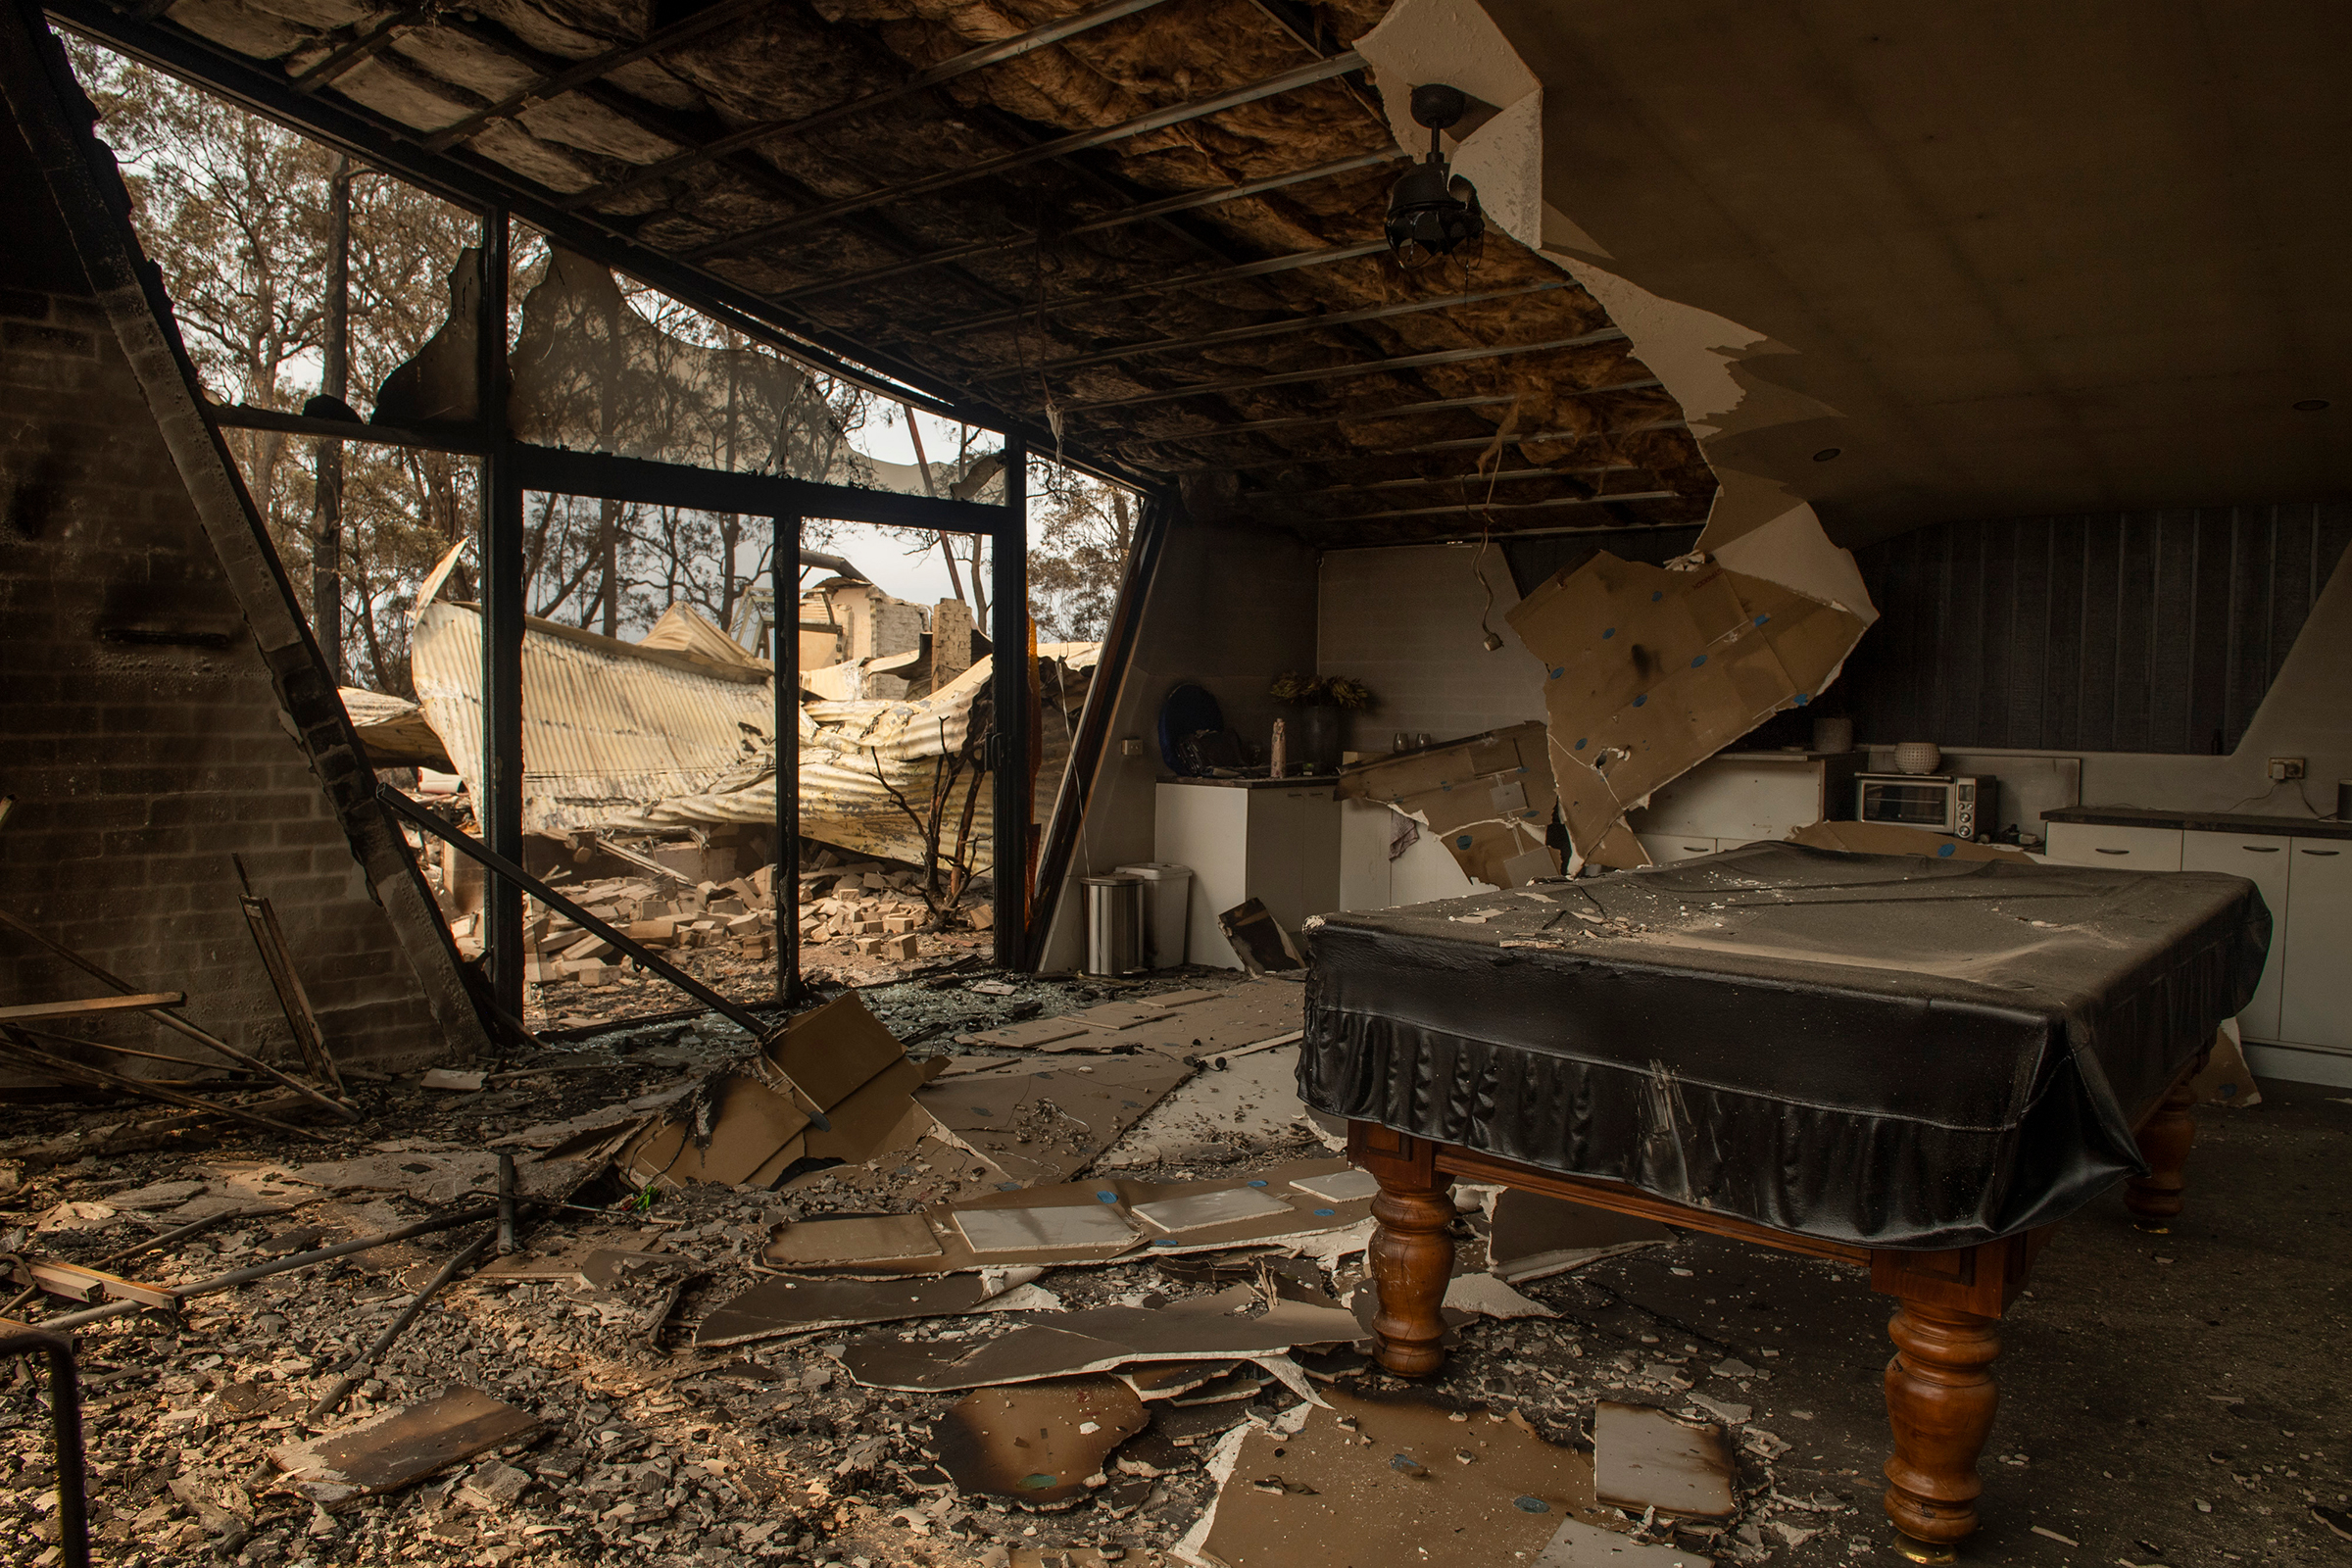 A destroyed house along The Ridge Road between Batemans Bay and Surf Beach on Jan. 3.